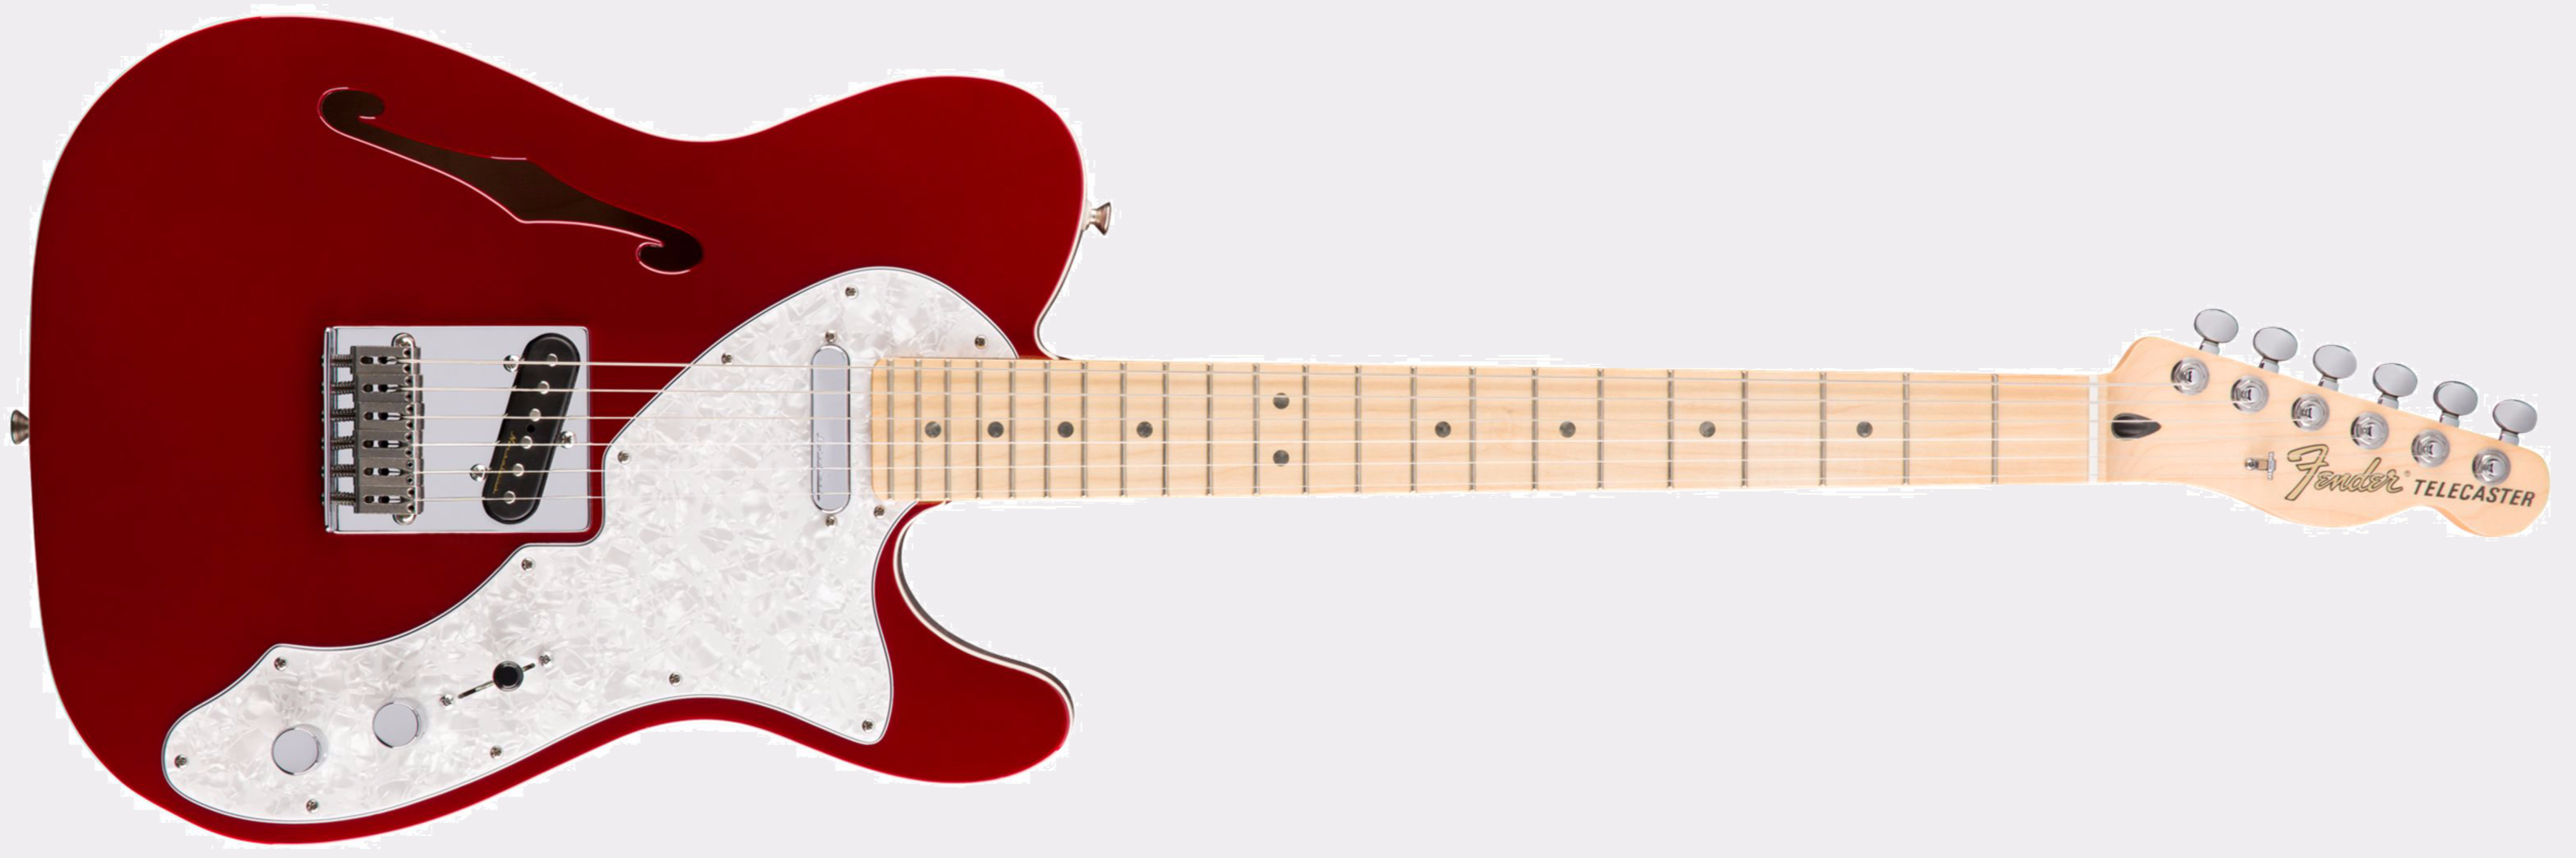 Deluxe Tele Thinline CAR Front